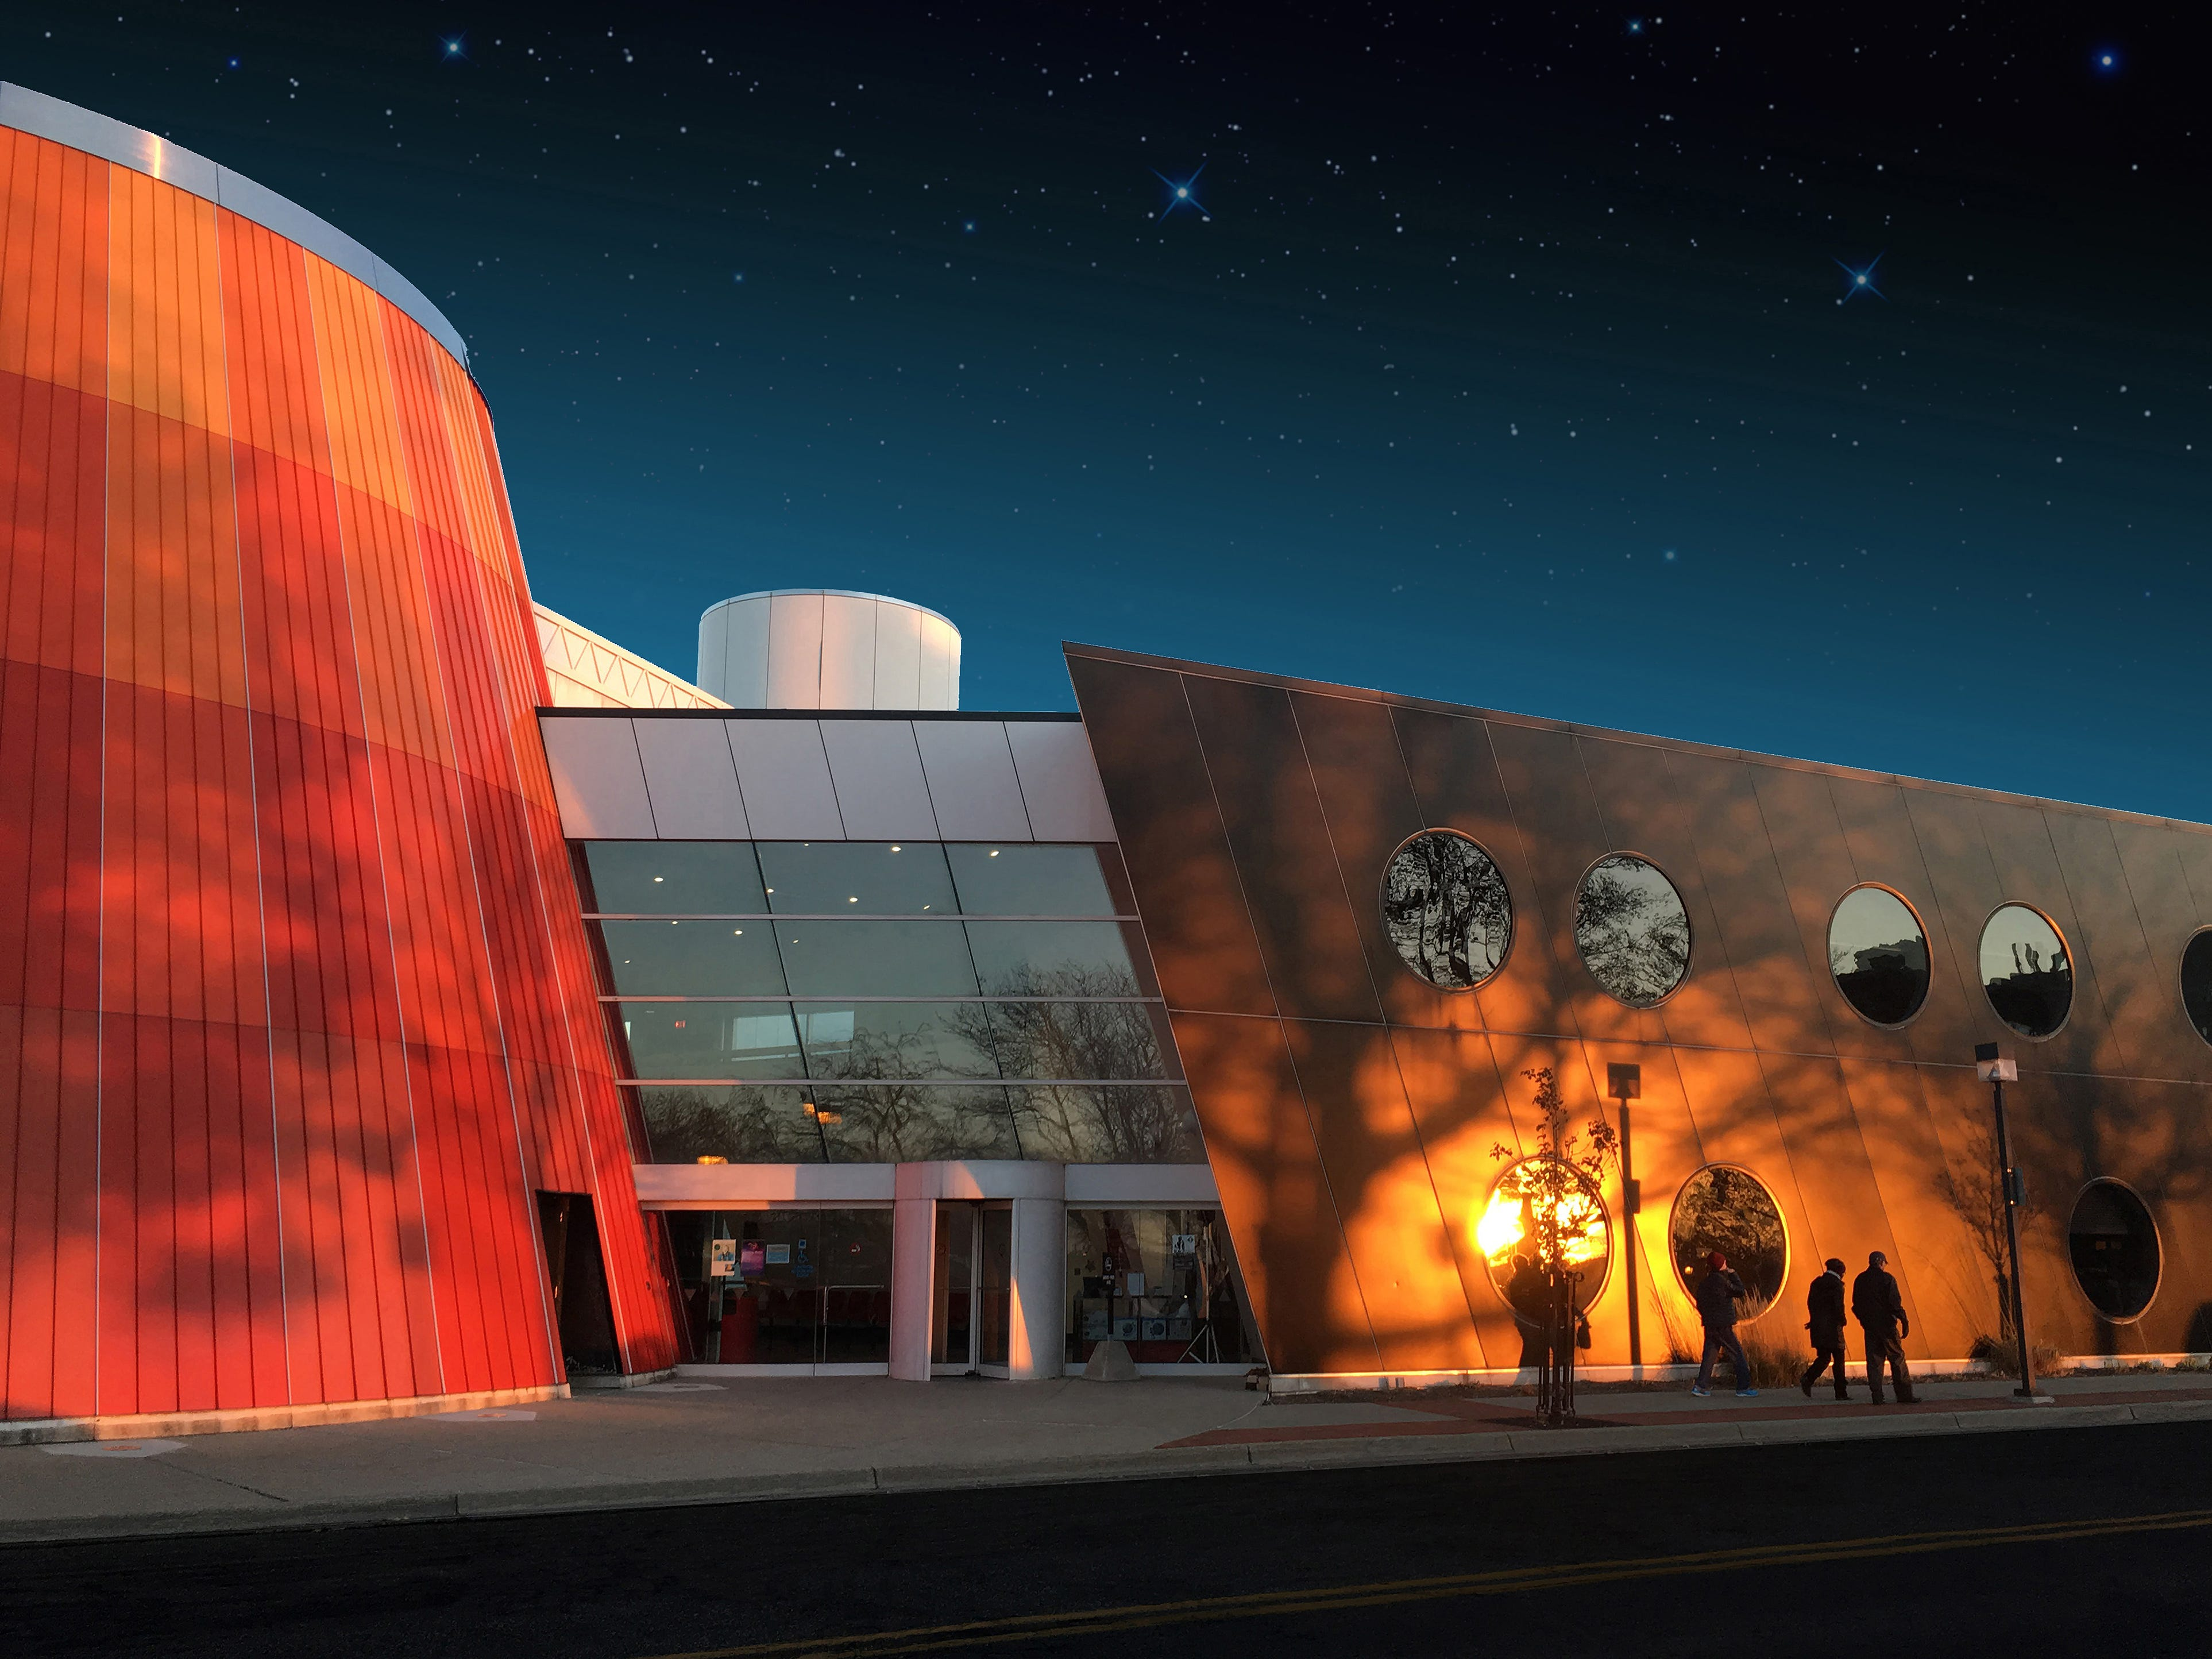 Delta College Planetarium and Learning Center, Bay City (Architect: William Kessler & Associates): In 1993, Delta College secured a NASA grant totaling $8.75 million to fund the design and construction of a facility that would foster an appreciation of the significance, relevance and application of the sciences. The building is certainly one of the most unique and significant buildings in downtown Bay City. The structure, rhythm and colors are very deliberate as the overall design is to represent the future, astronomy and space exploration. The building design won two very significant awards from the American Institute of Architects.